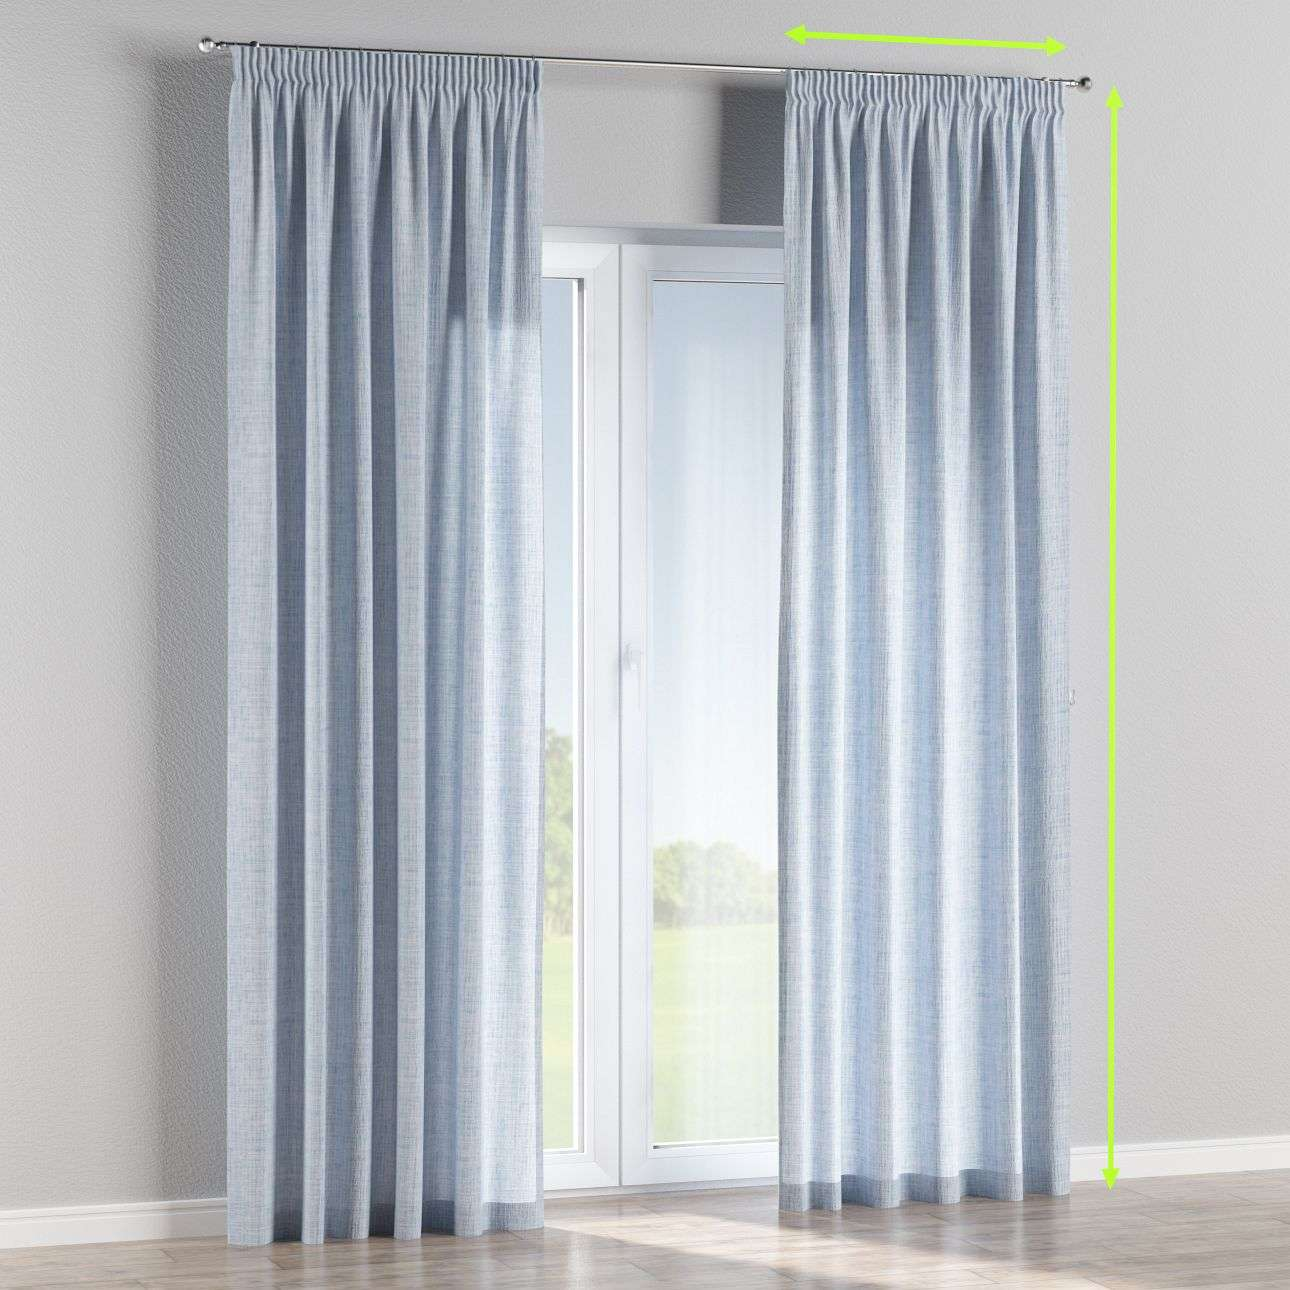 Pencil pleat curtains in collection Aquarelle, fabric: 140-74